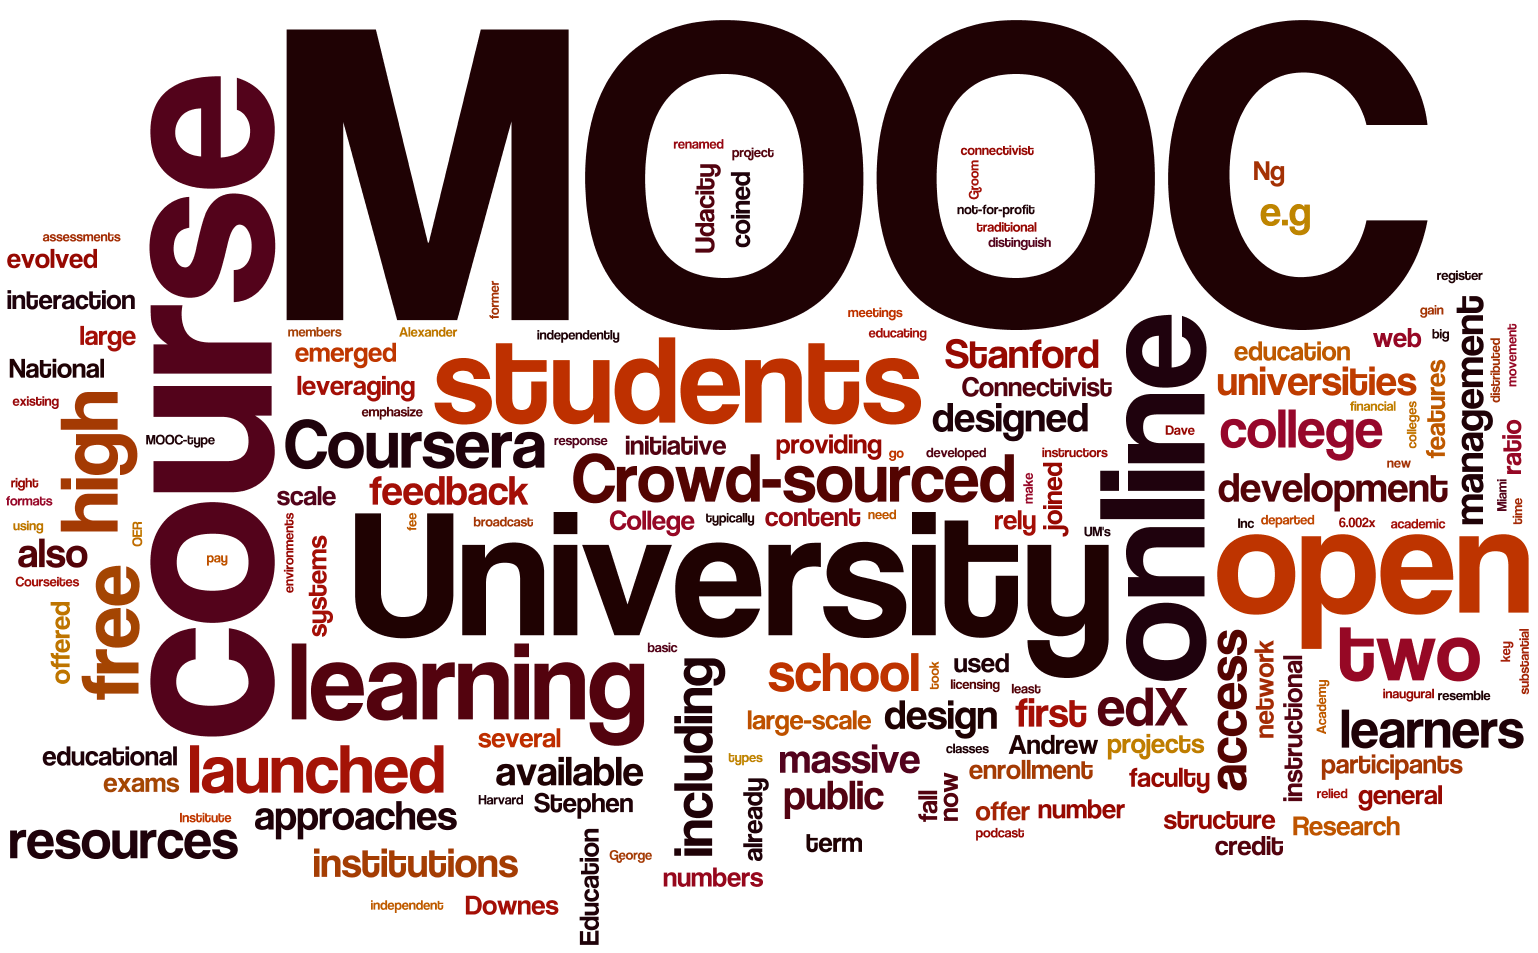 Word cloud from Univ. of Wisconsin